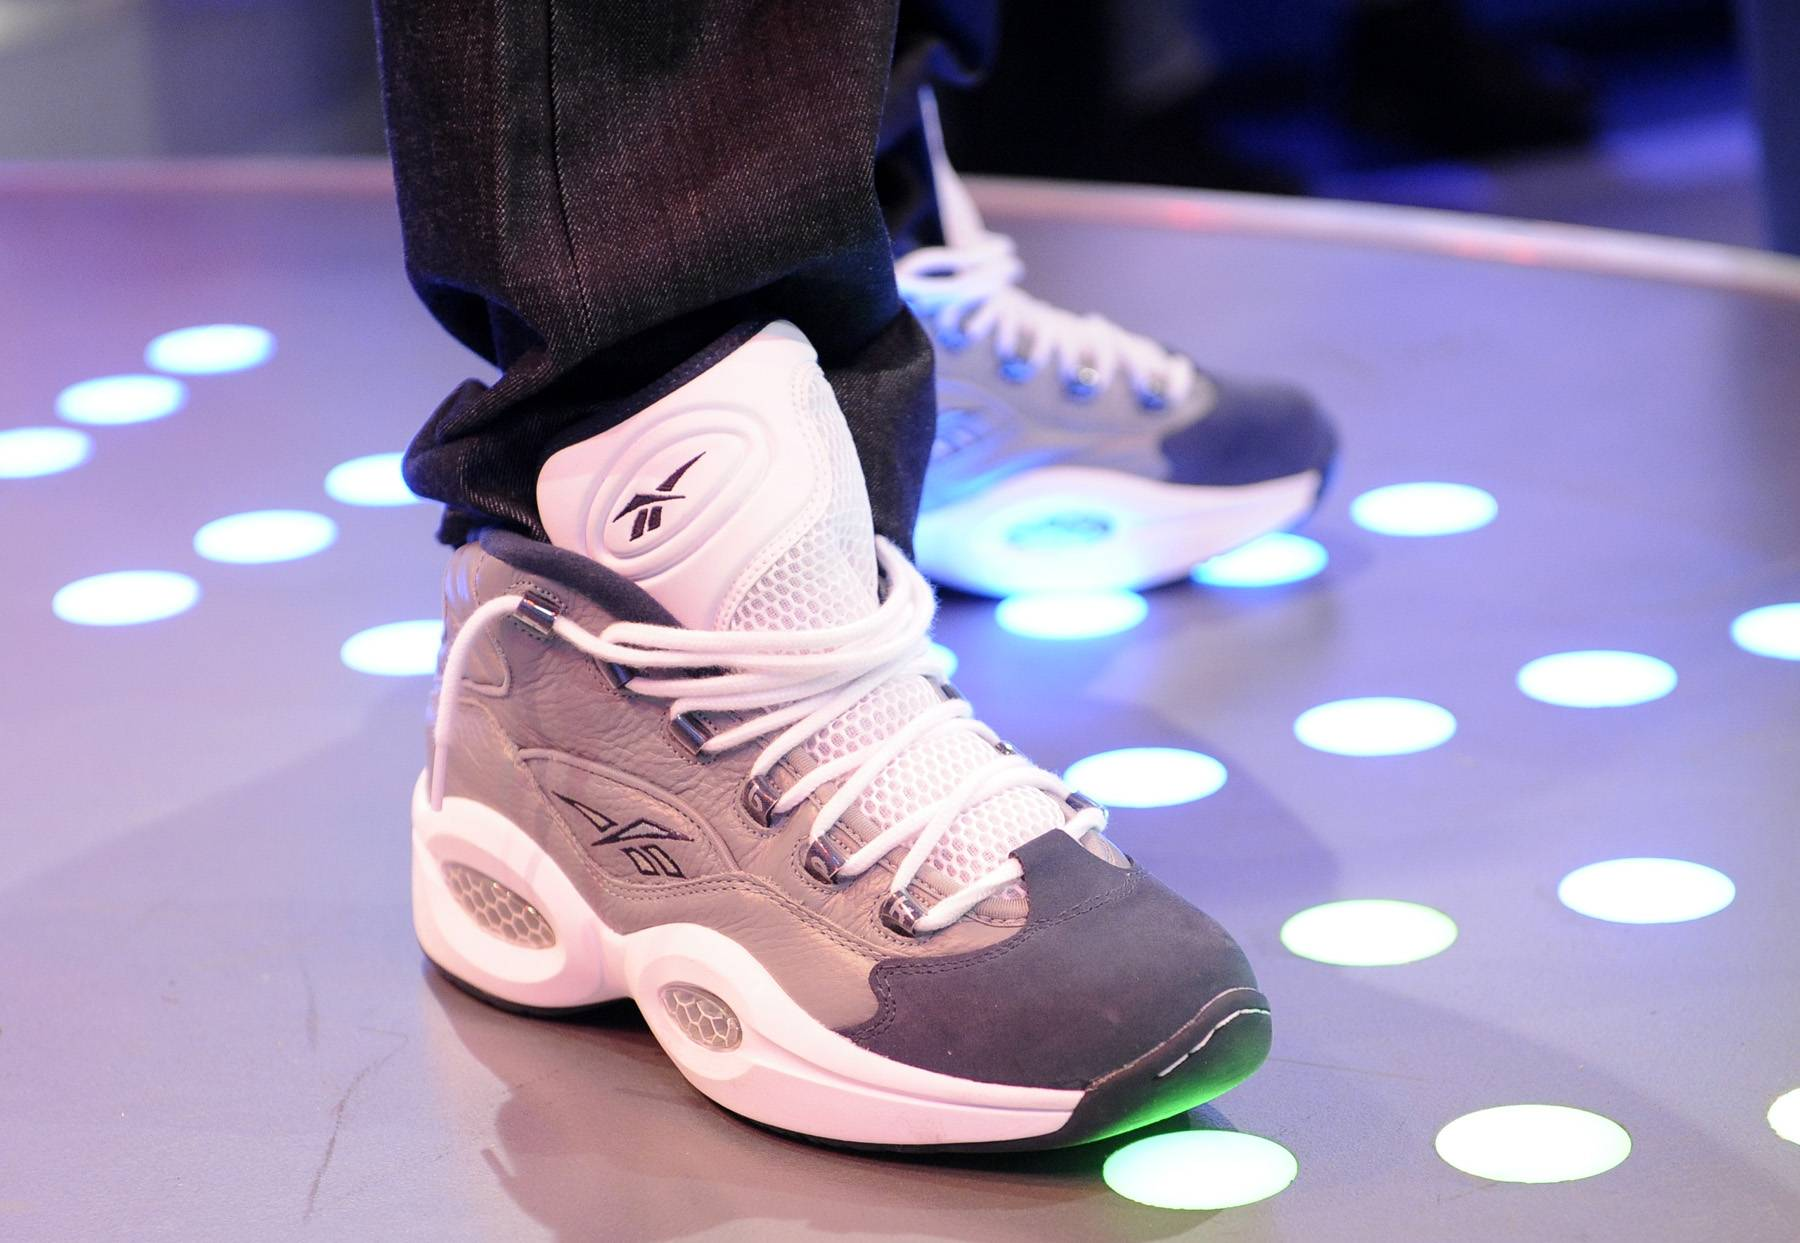 Laced Up - 106 & Park, March 11, 2013. (Photo: John Ricard / BET)